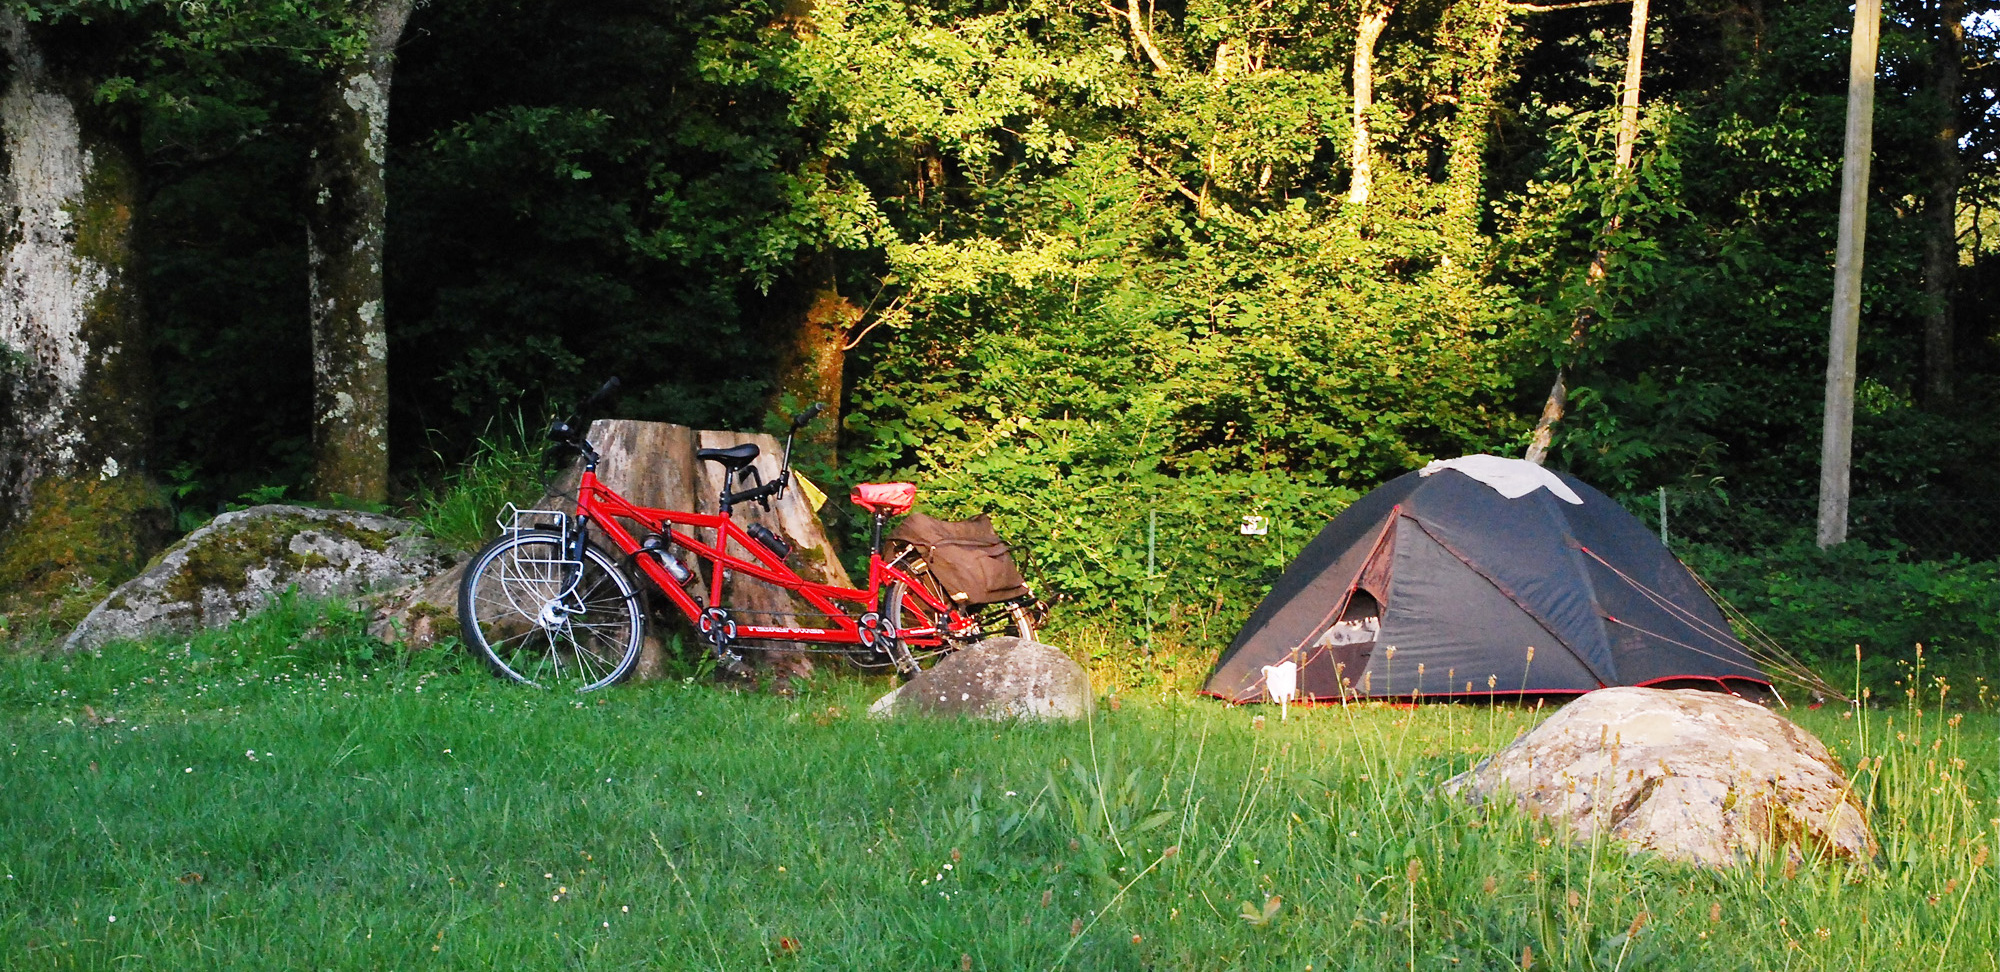 Pyrenees camping cycle route